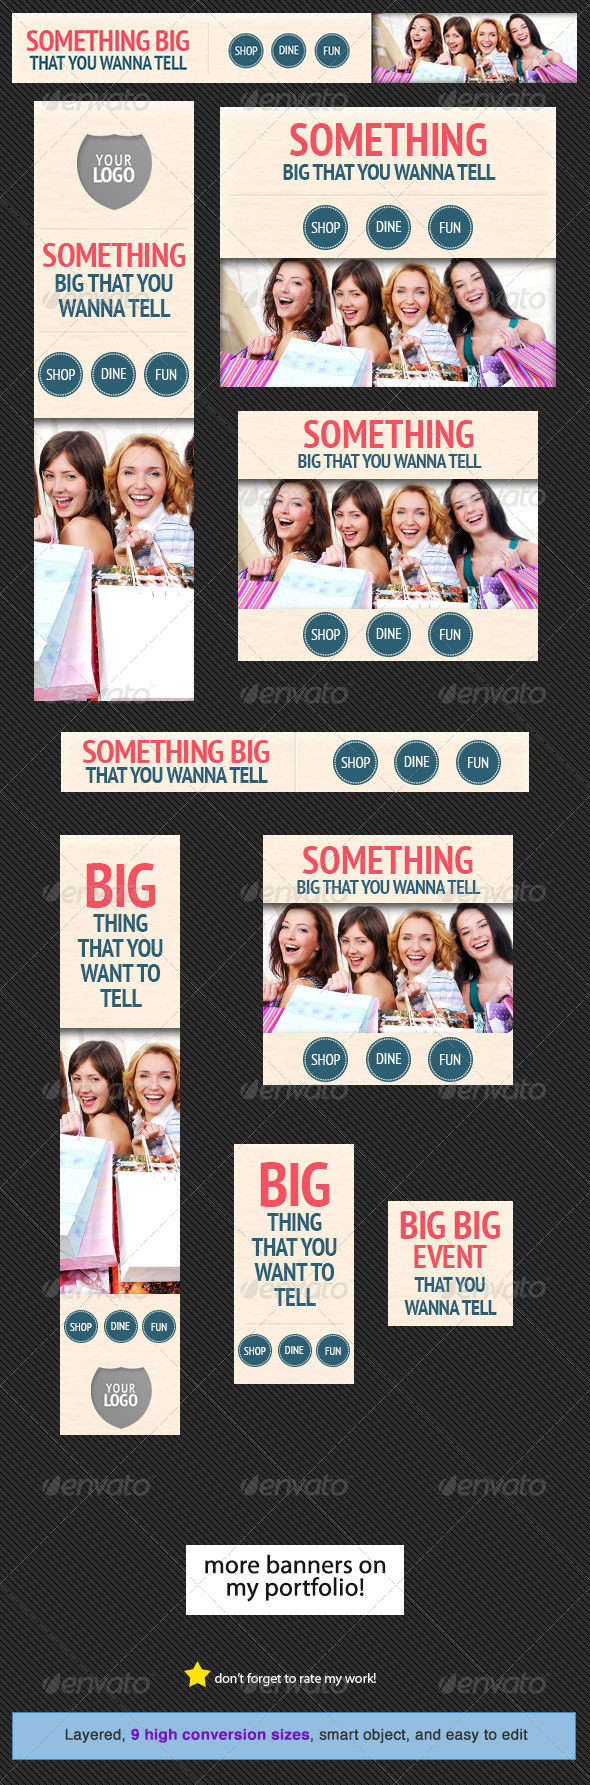 Shop and Dine Web Banner Design Template - Banners & Ads Web Elements